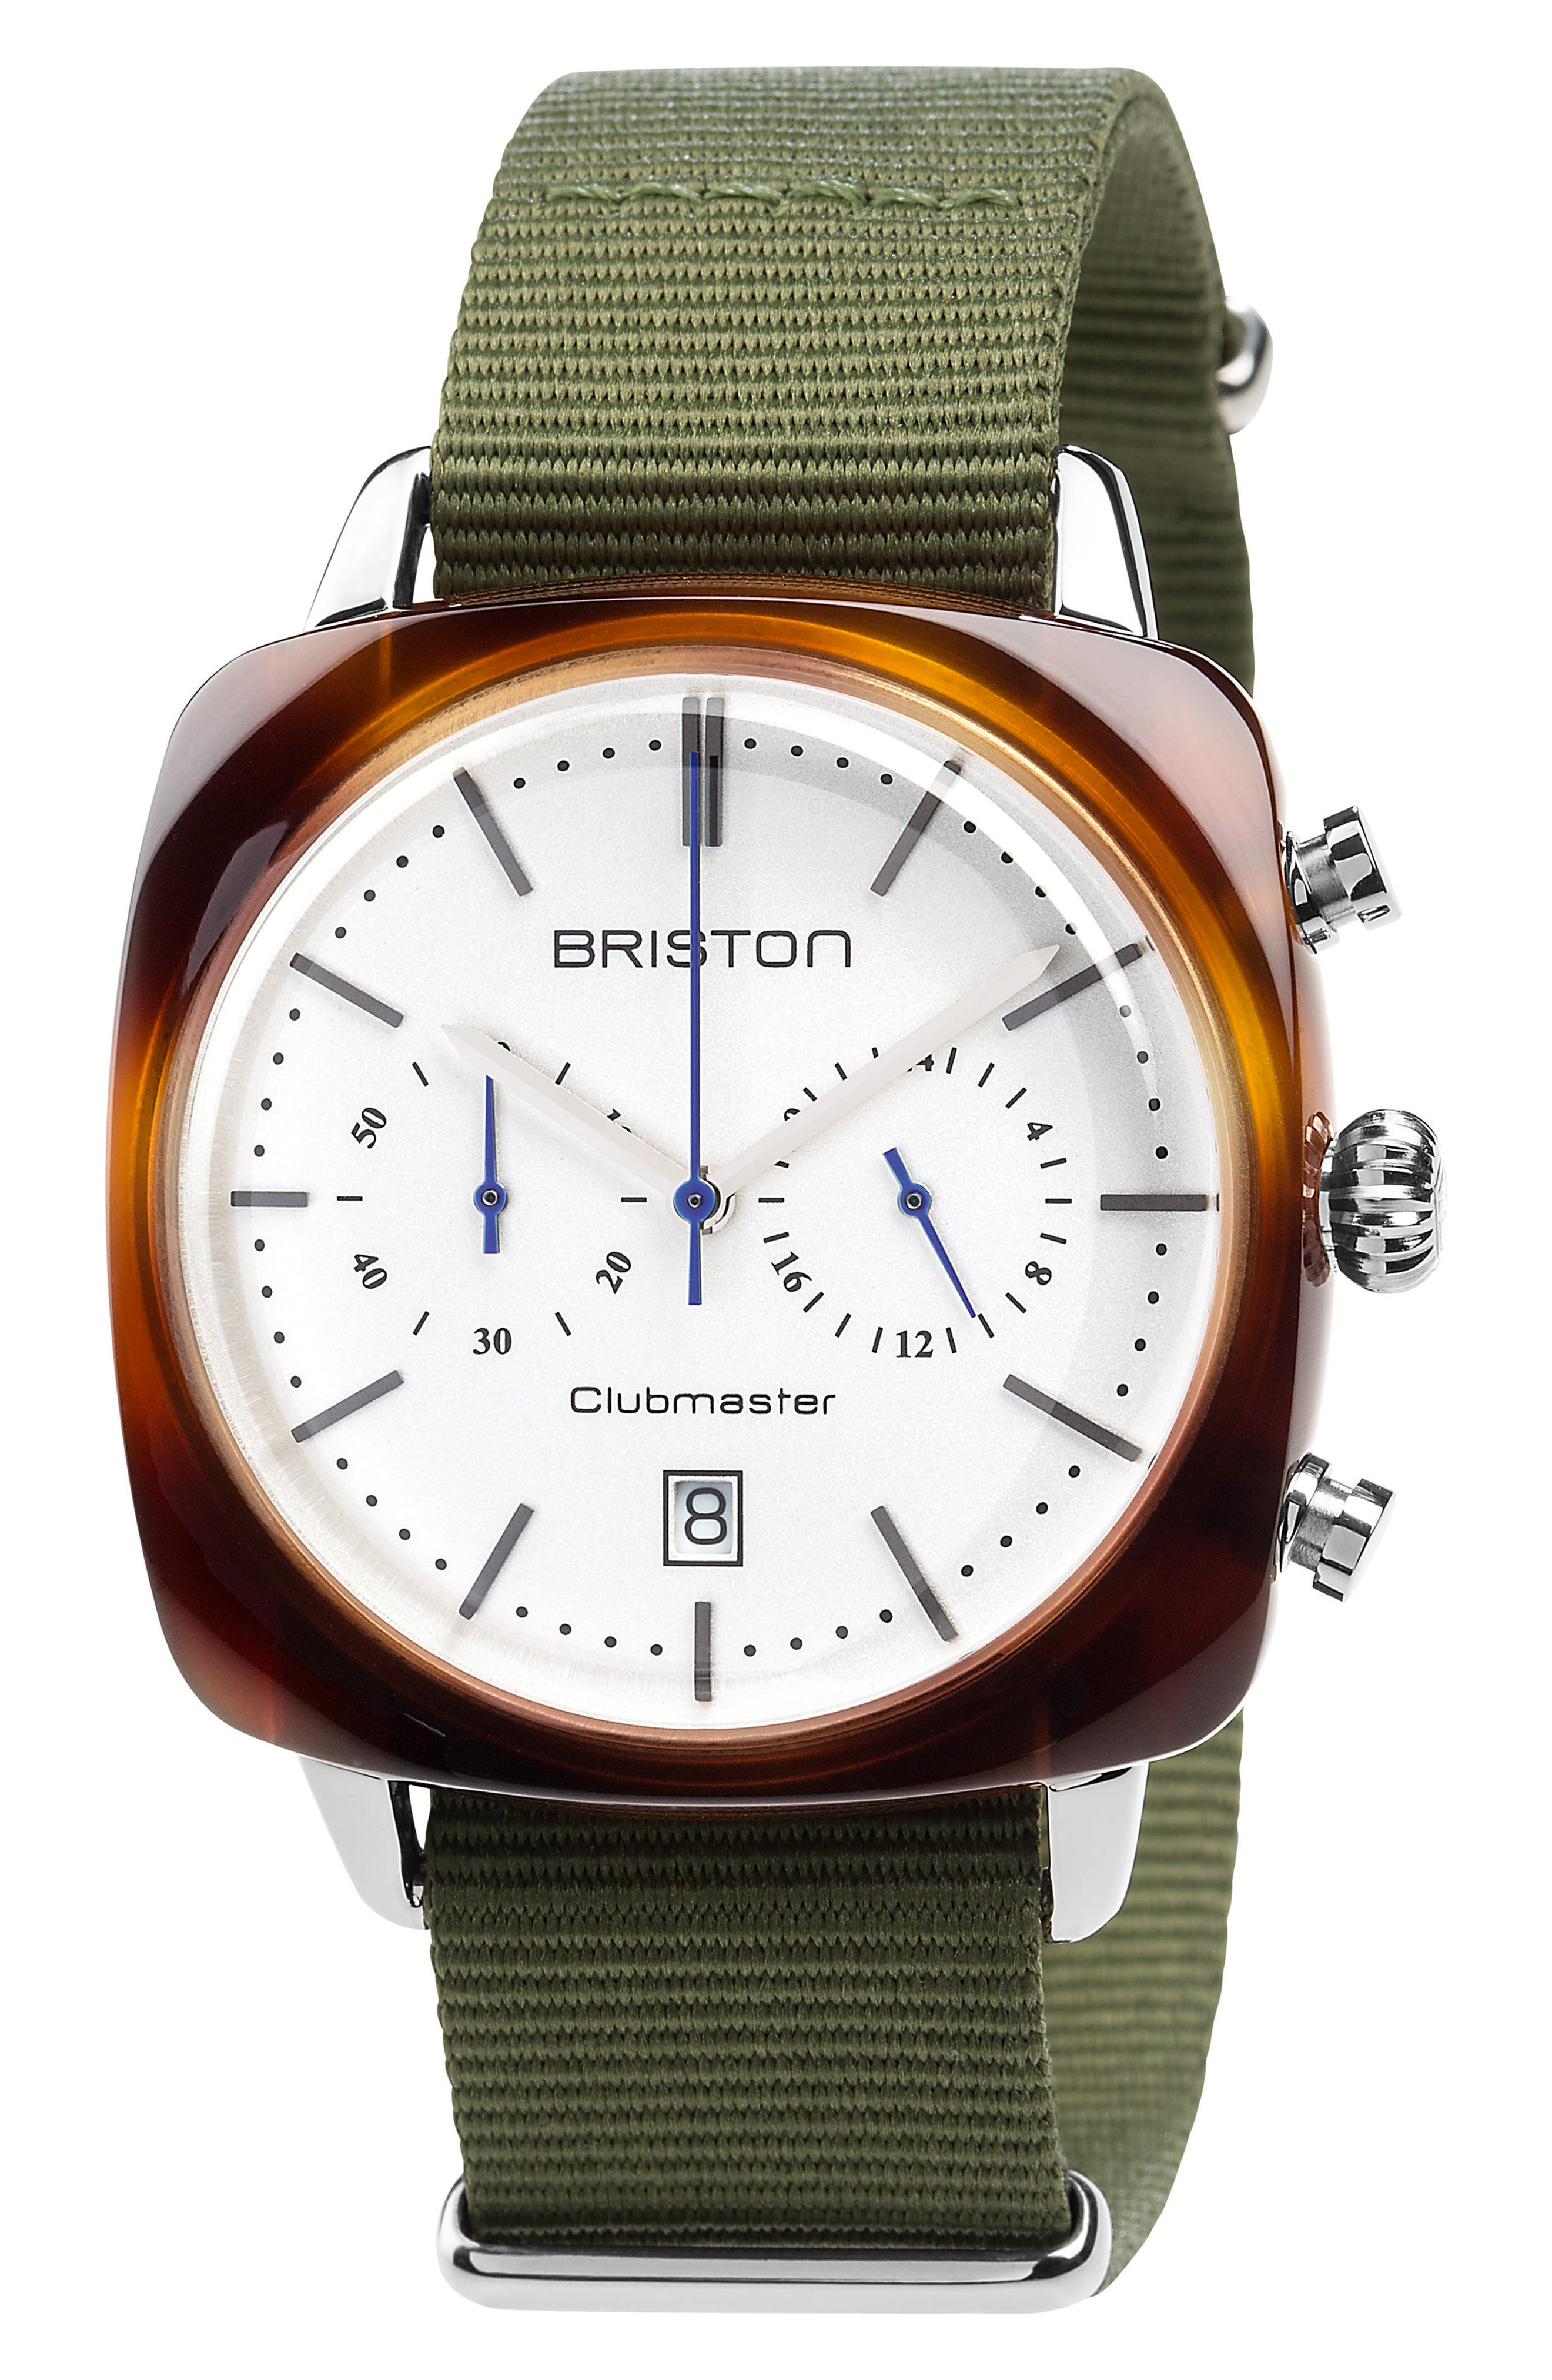 Main Image - Briston Watches Clubmaster Vintage Chronograph Nylon Strap Watch, 40mm x 40mm